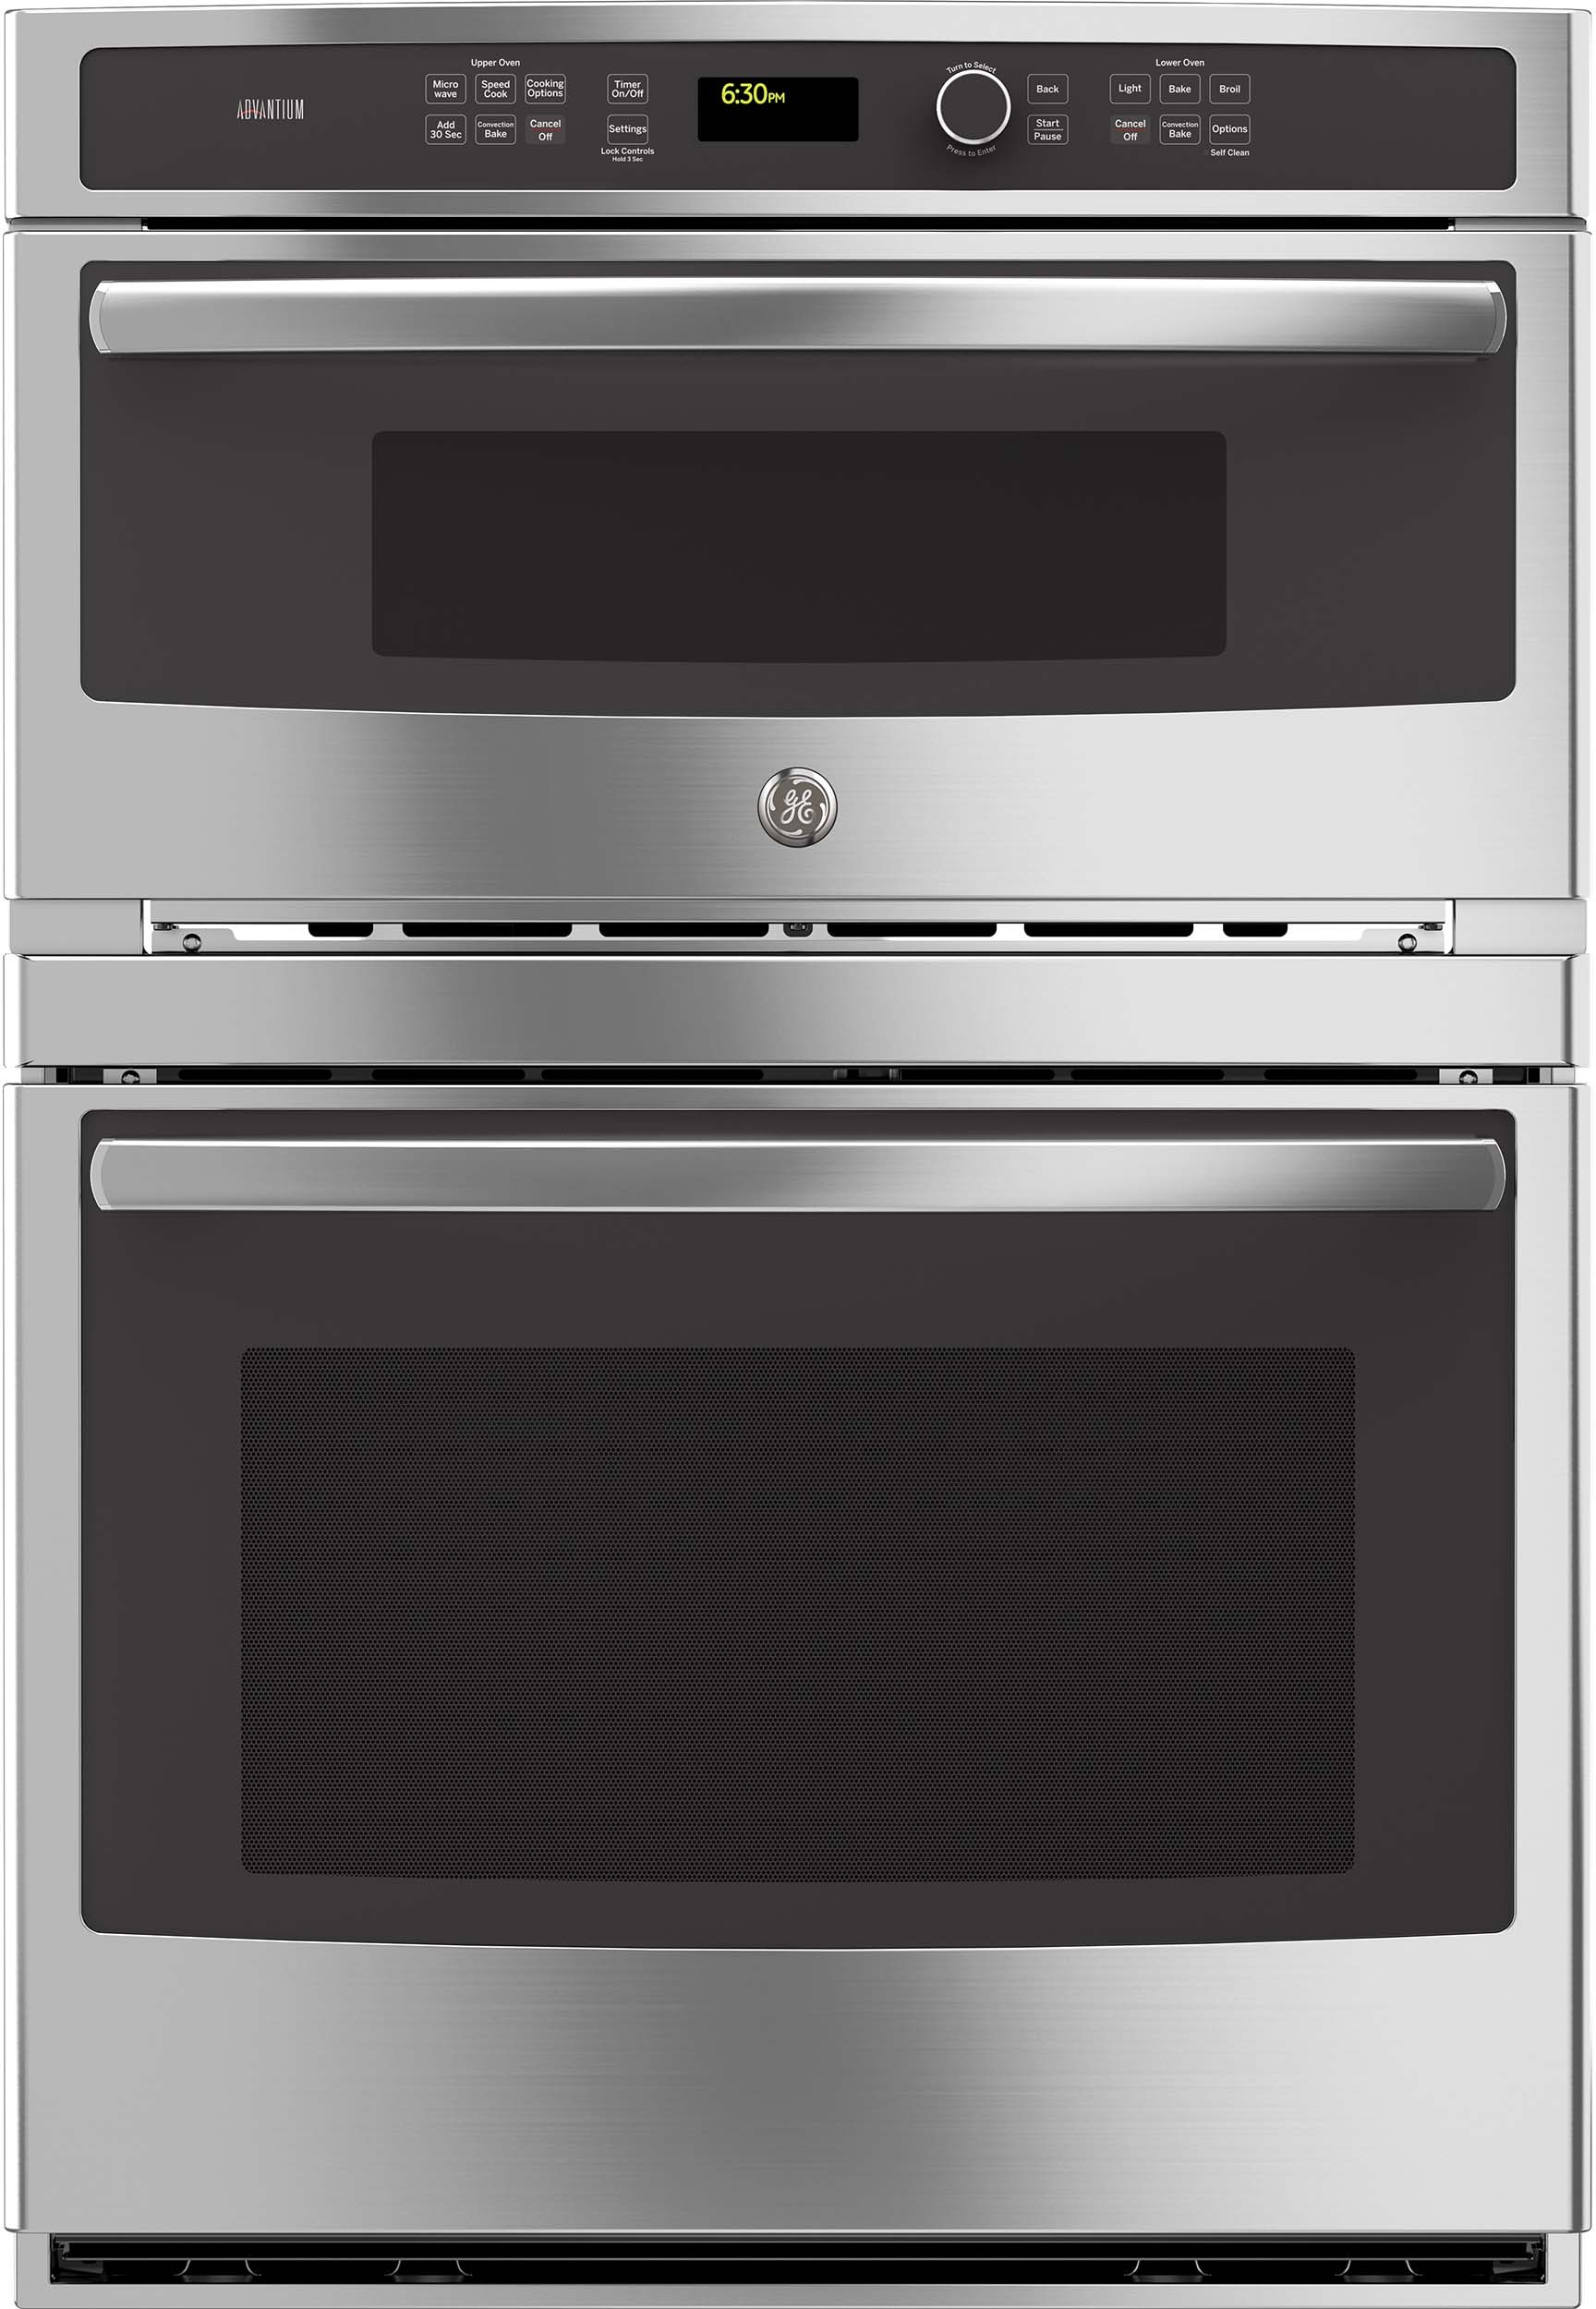 GE PT9800SHSS 30 Inch Built-in Combination Wall Oven with 5.0 cu. ft ...